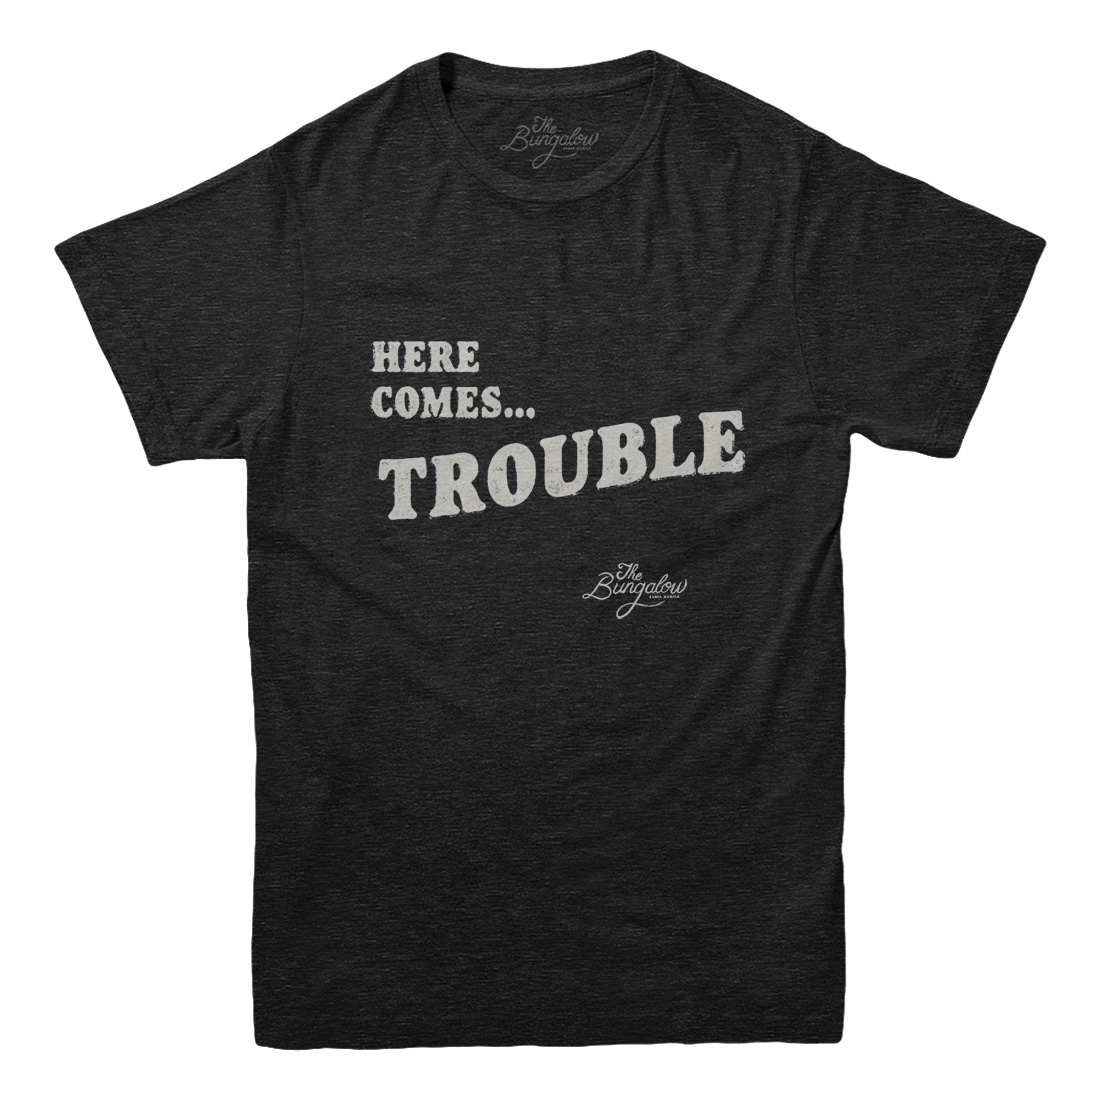 SS TROUBLE // HEATHER BLACK